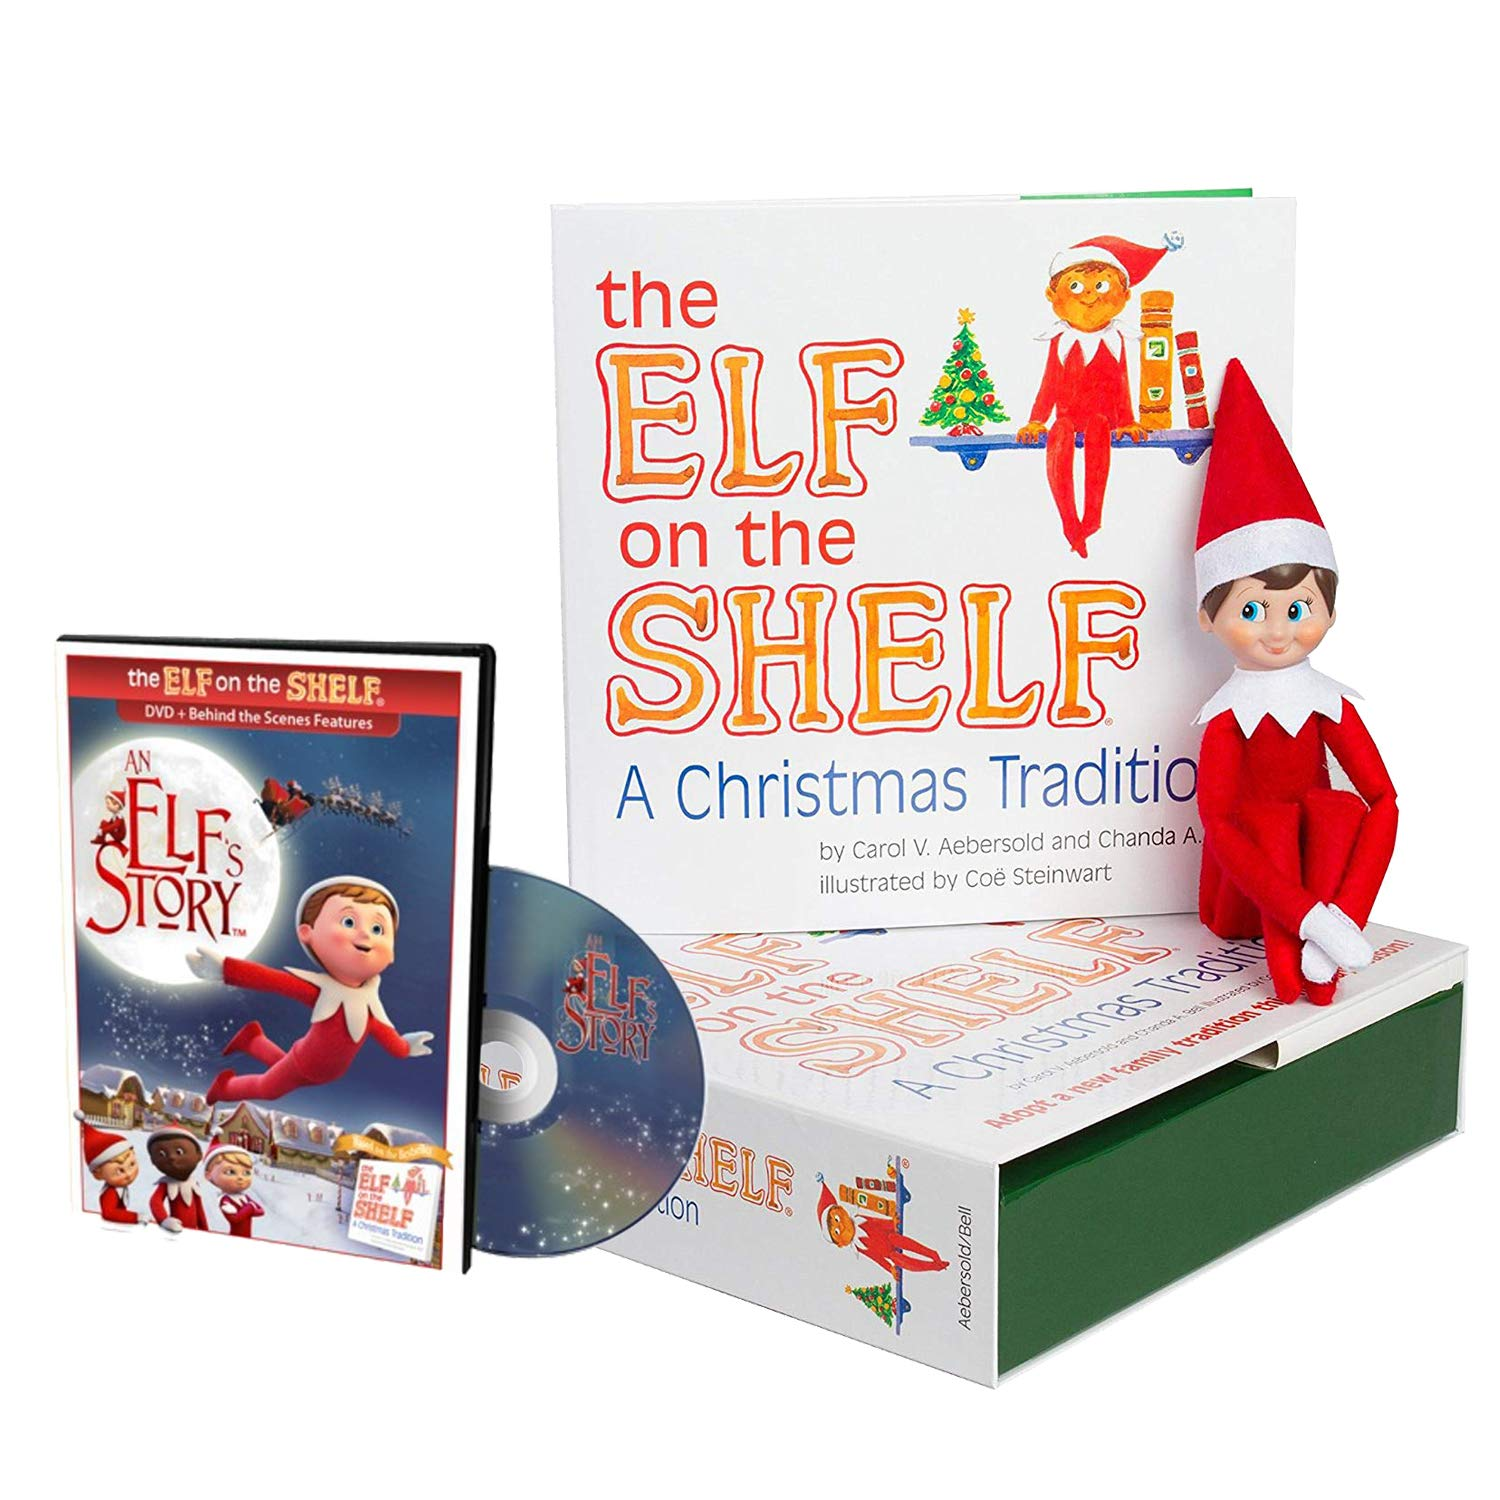 Amazon.com: The Elf on the Shelf Christmas Tradition with North Pole ...